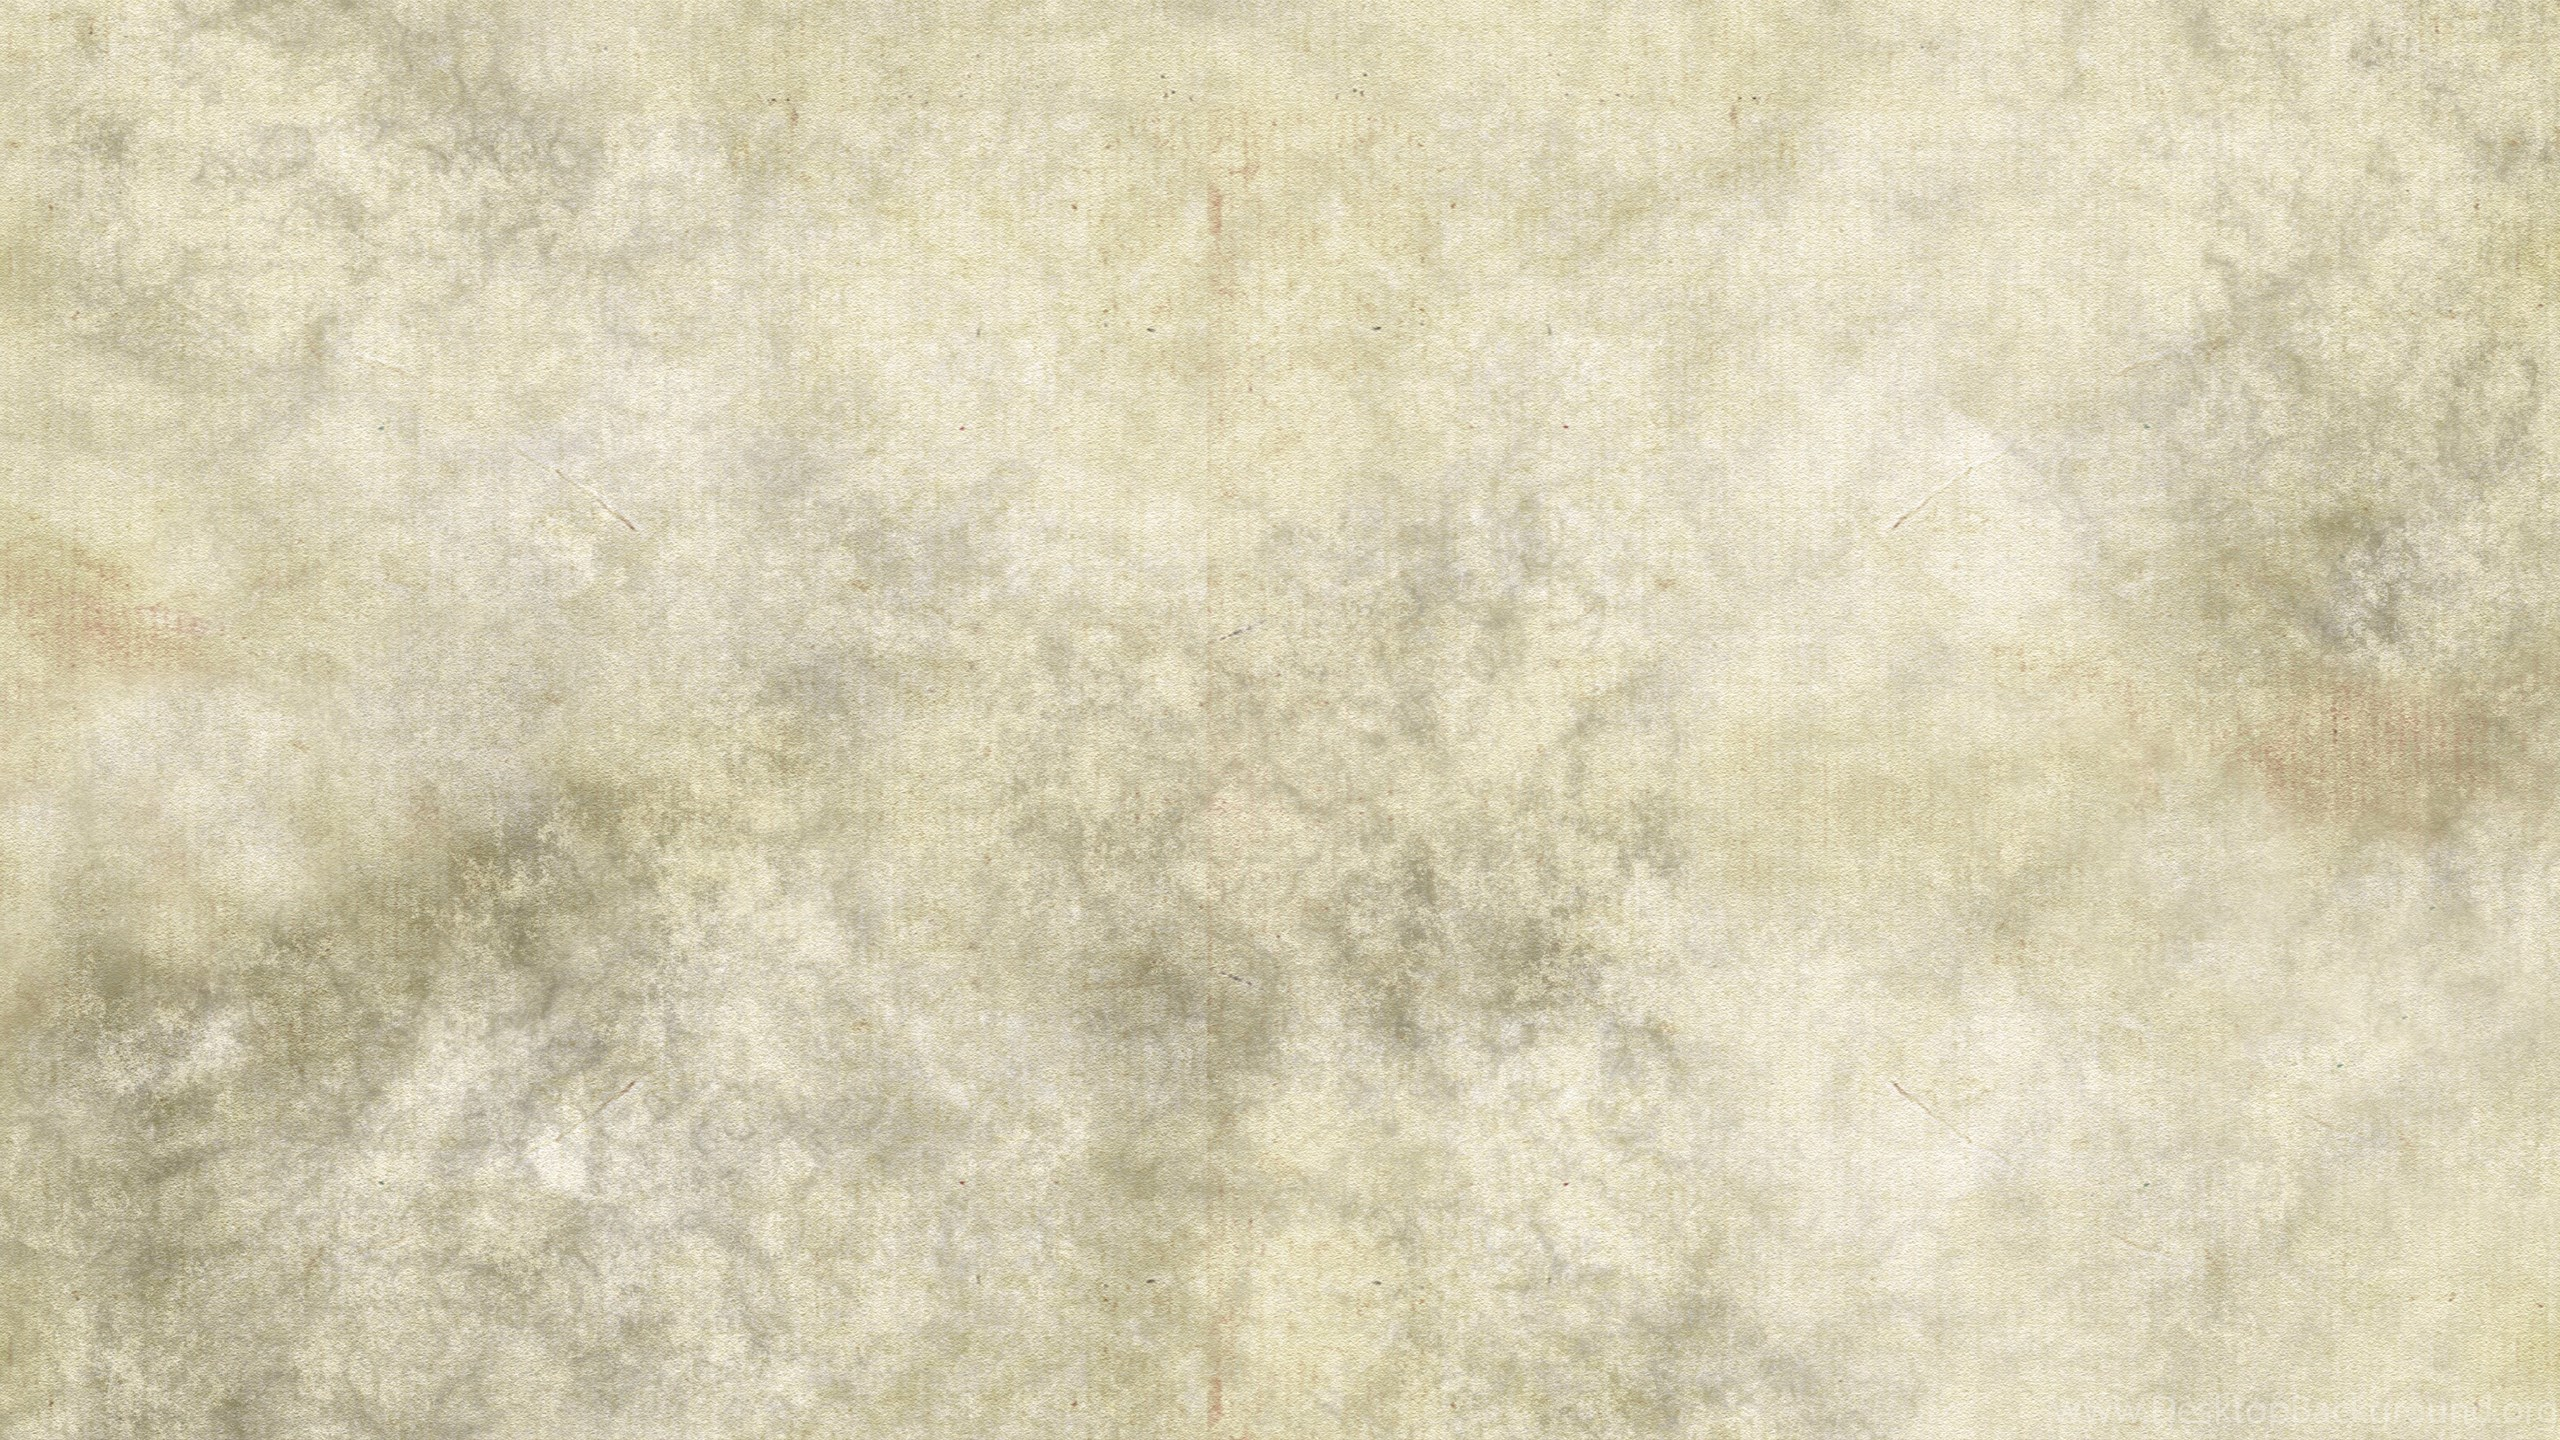 parchment paper backgrounds wallpaper picture free hd